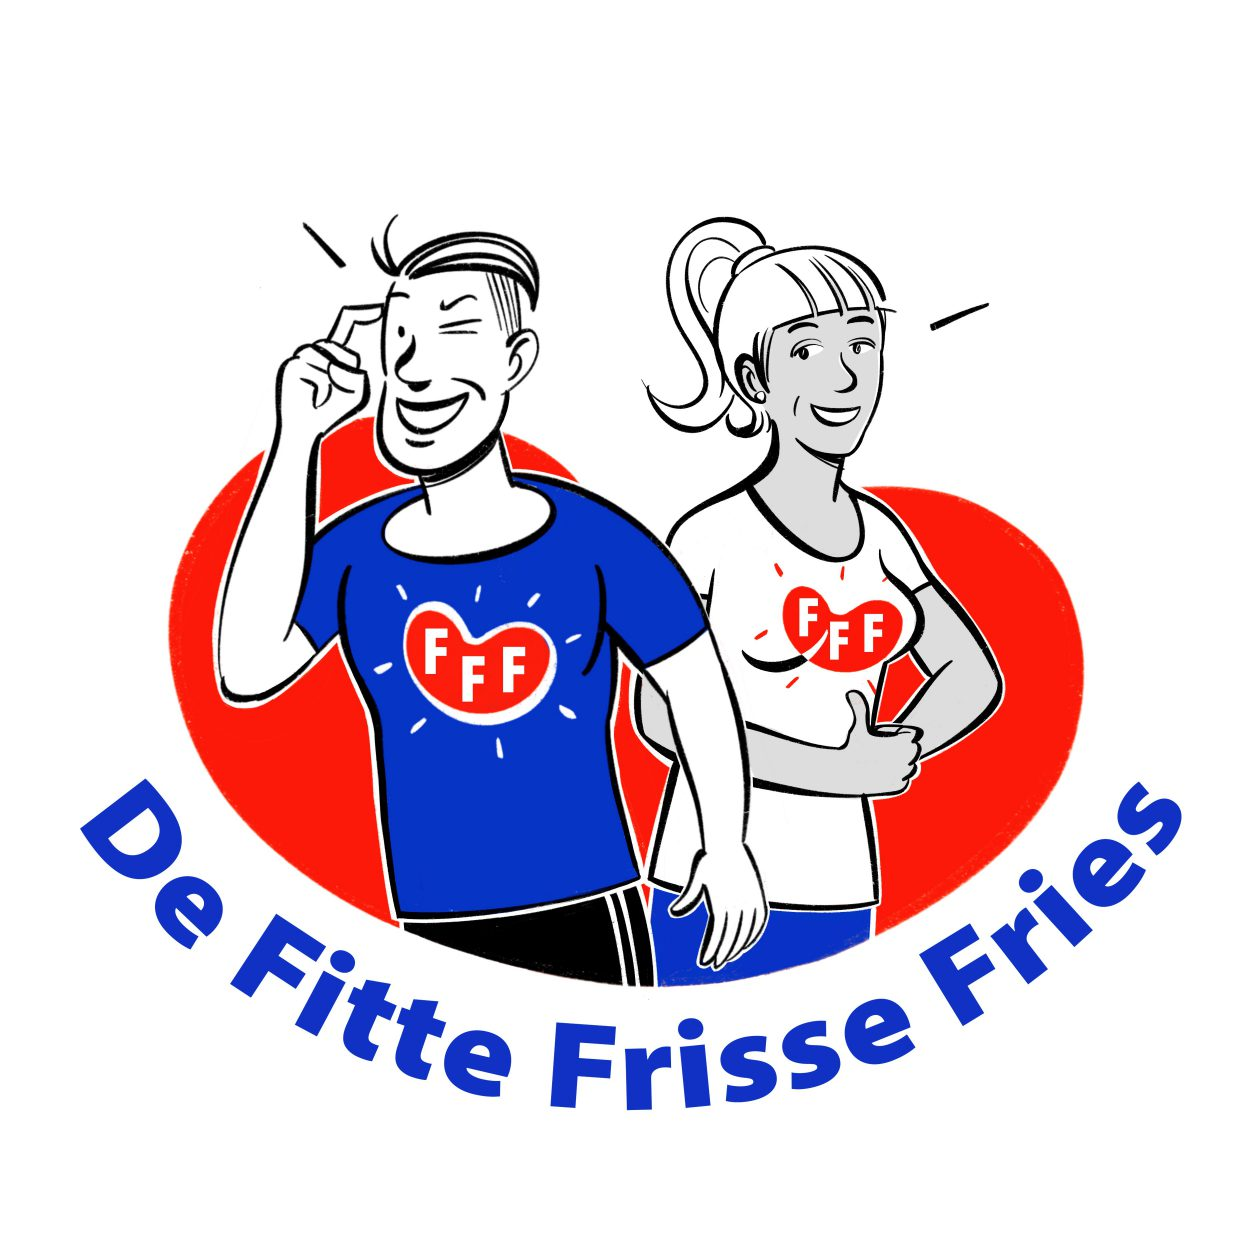 De Fitte Frisse Fries!